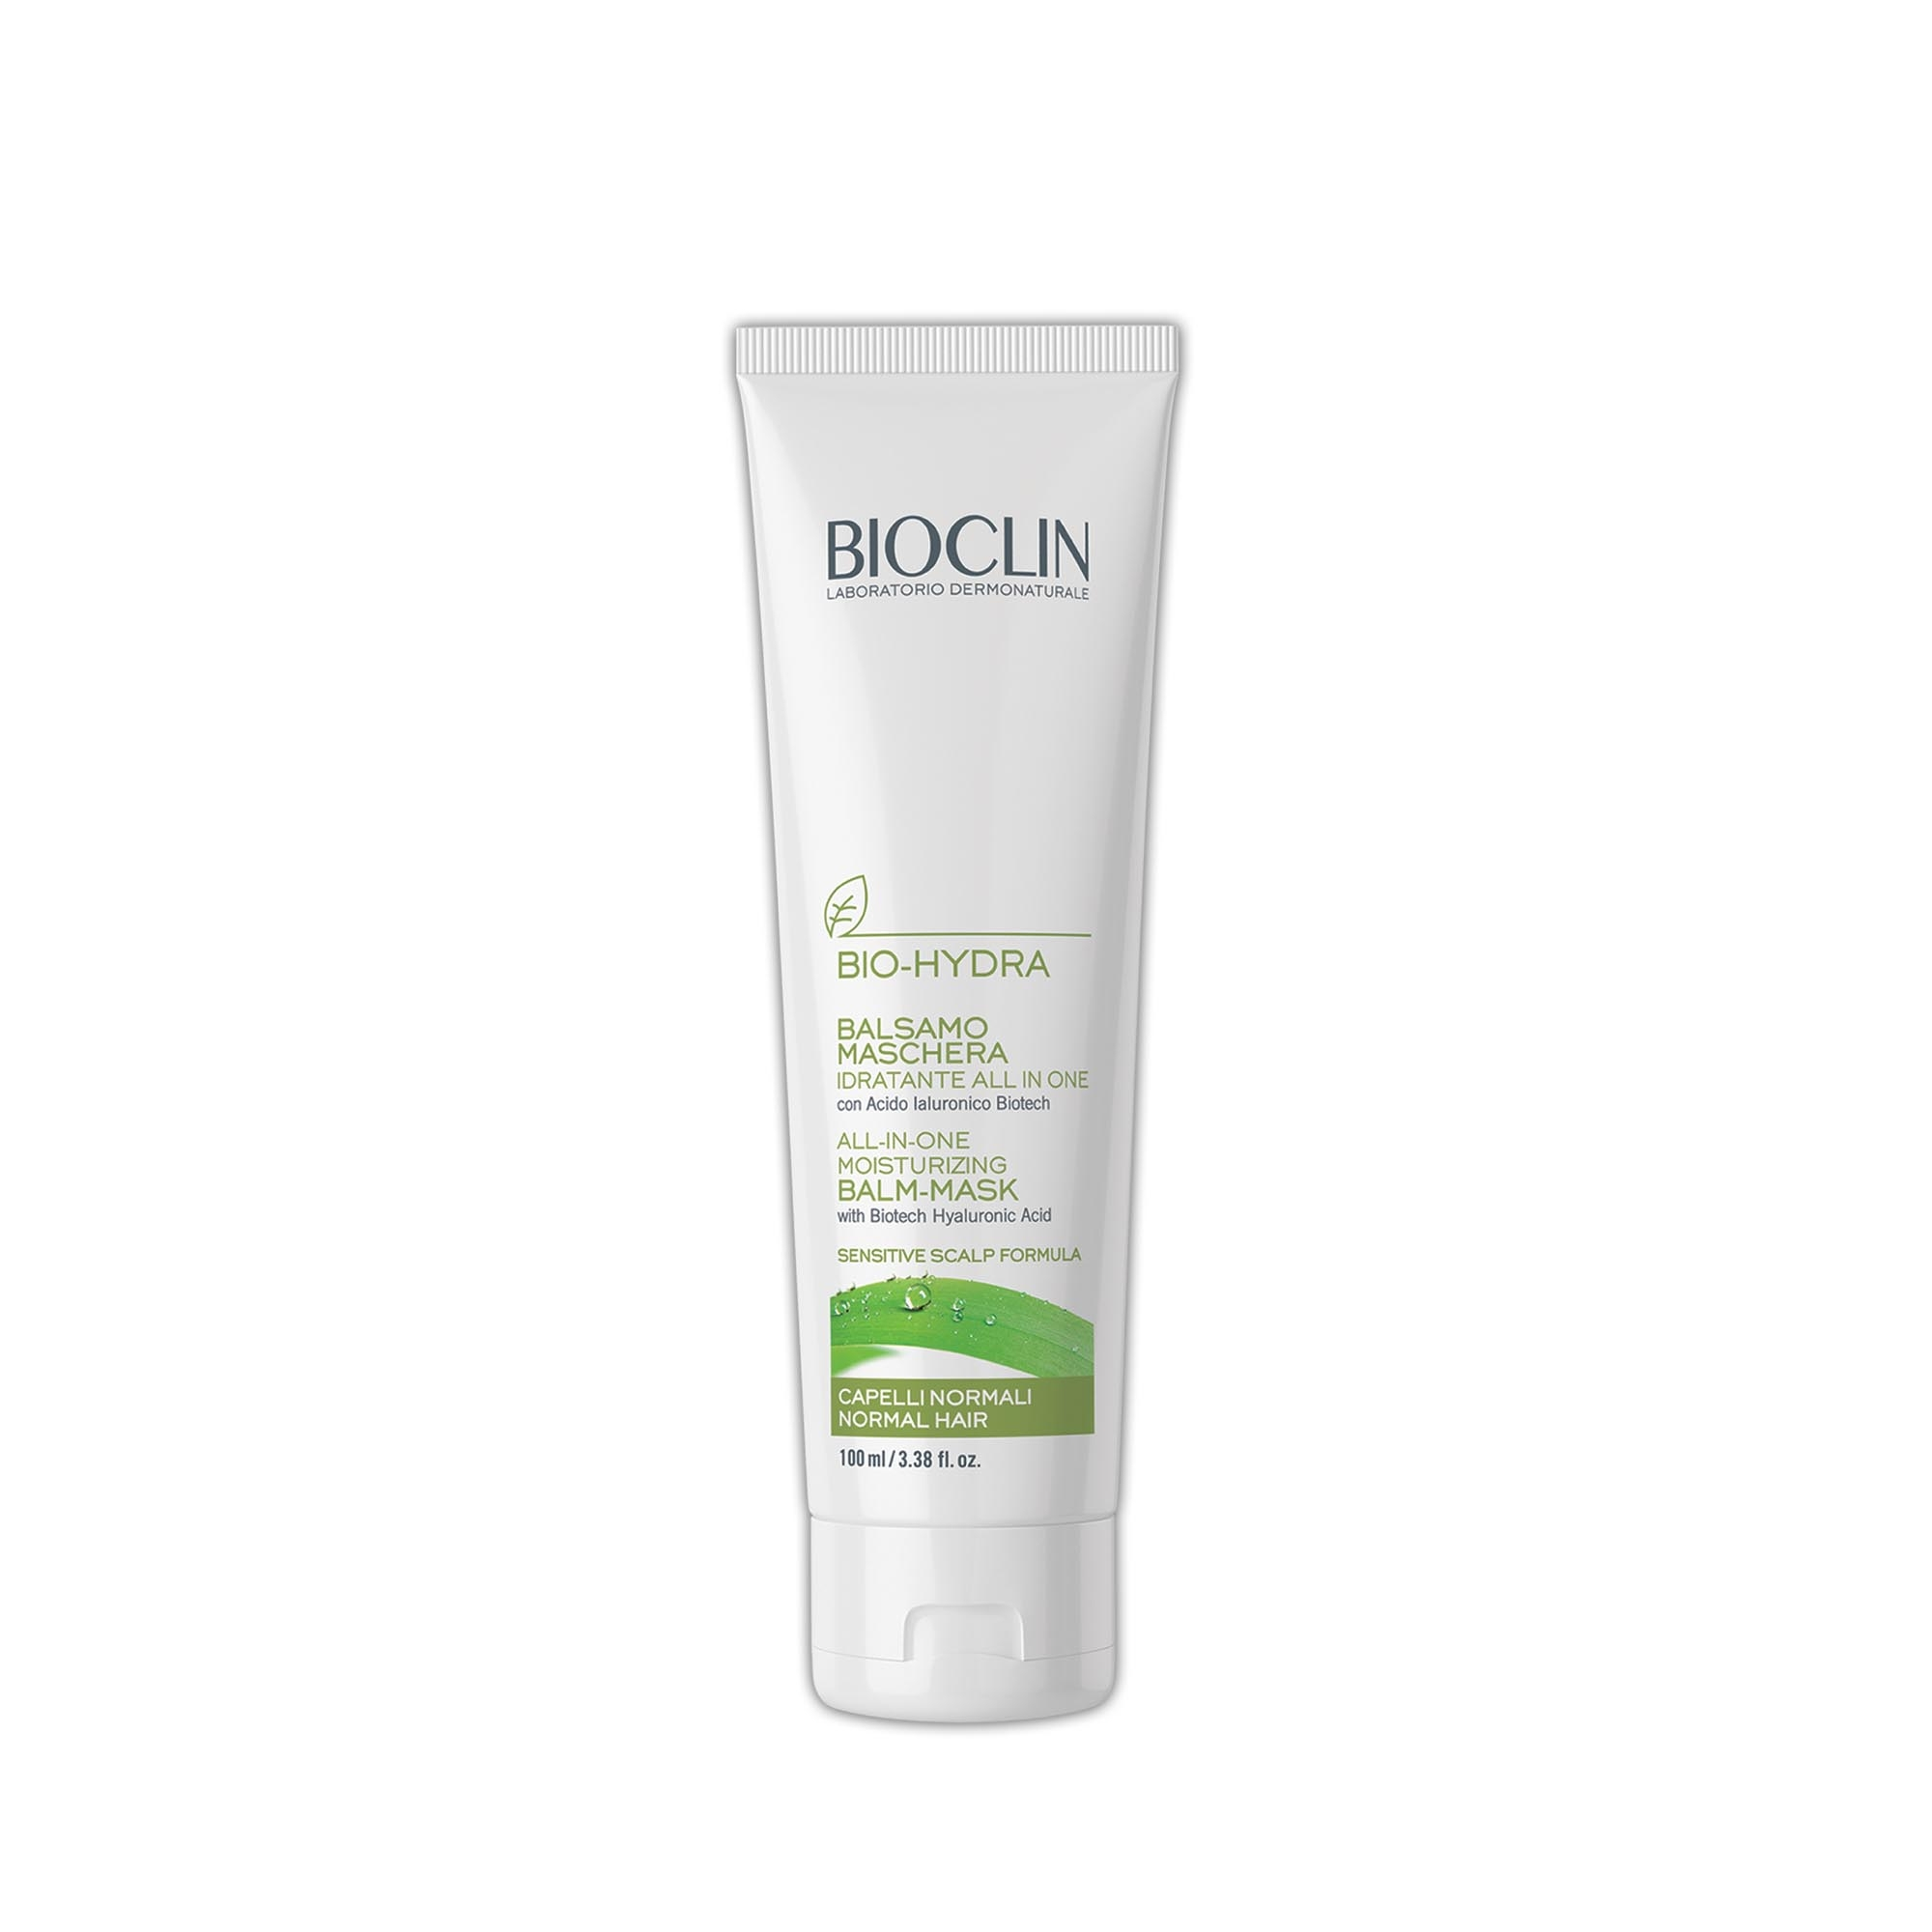 本頁圖片/檔案 - Bioclin Bio-Hydra All-In-One Moisturizing Balm-Mask